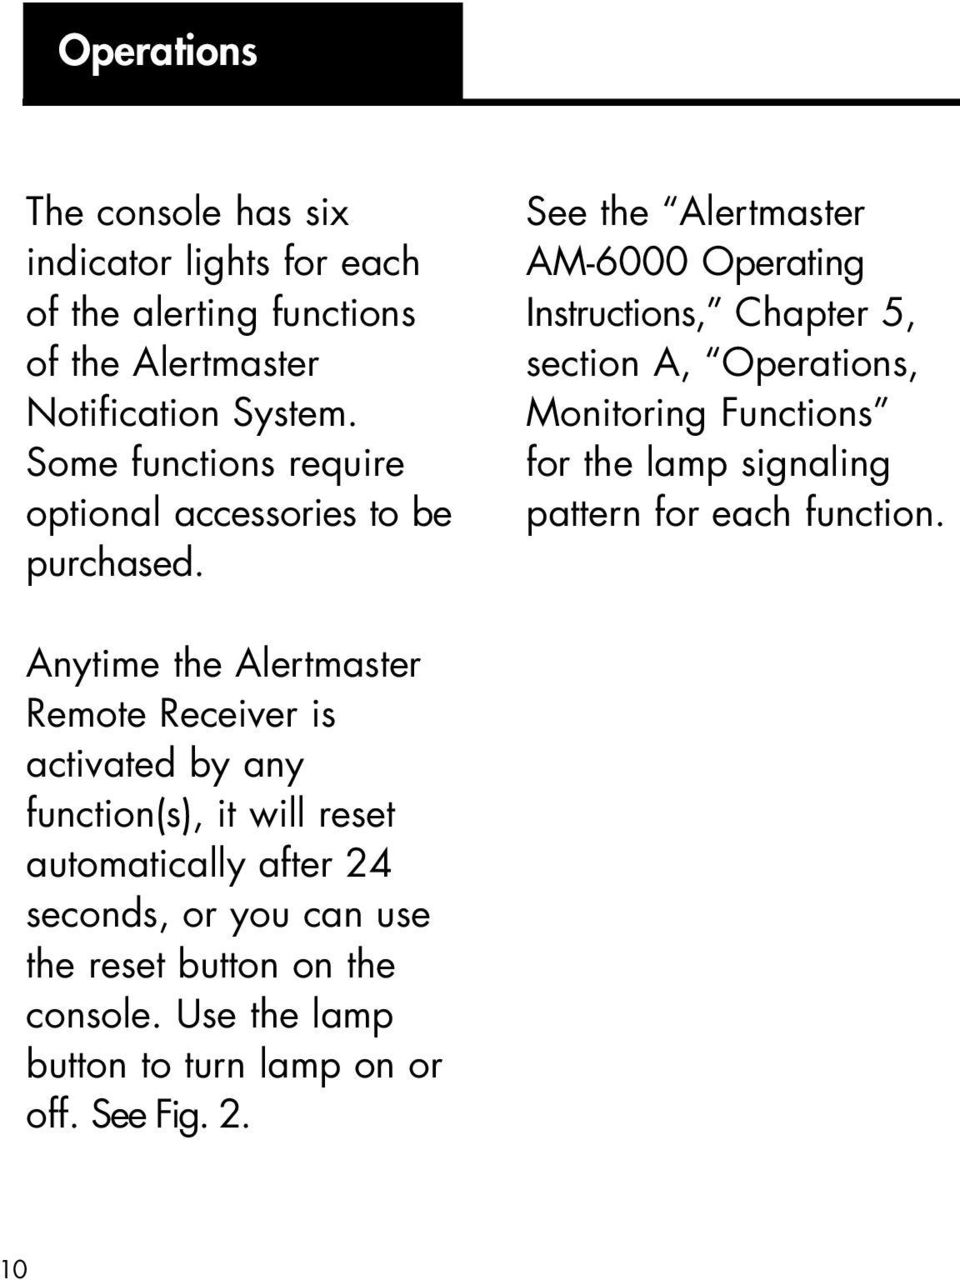 ee the lertmaster M-6000 Operating Instructions, Chapter 5, section, Operations, Monitoring Functions for the lamp signaling pattern for